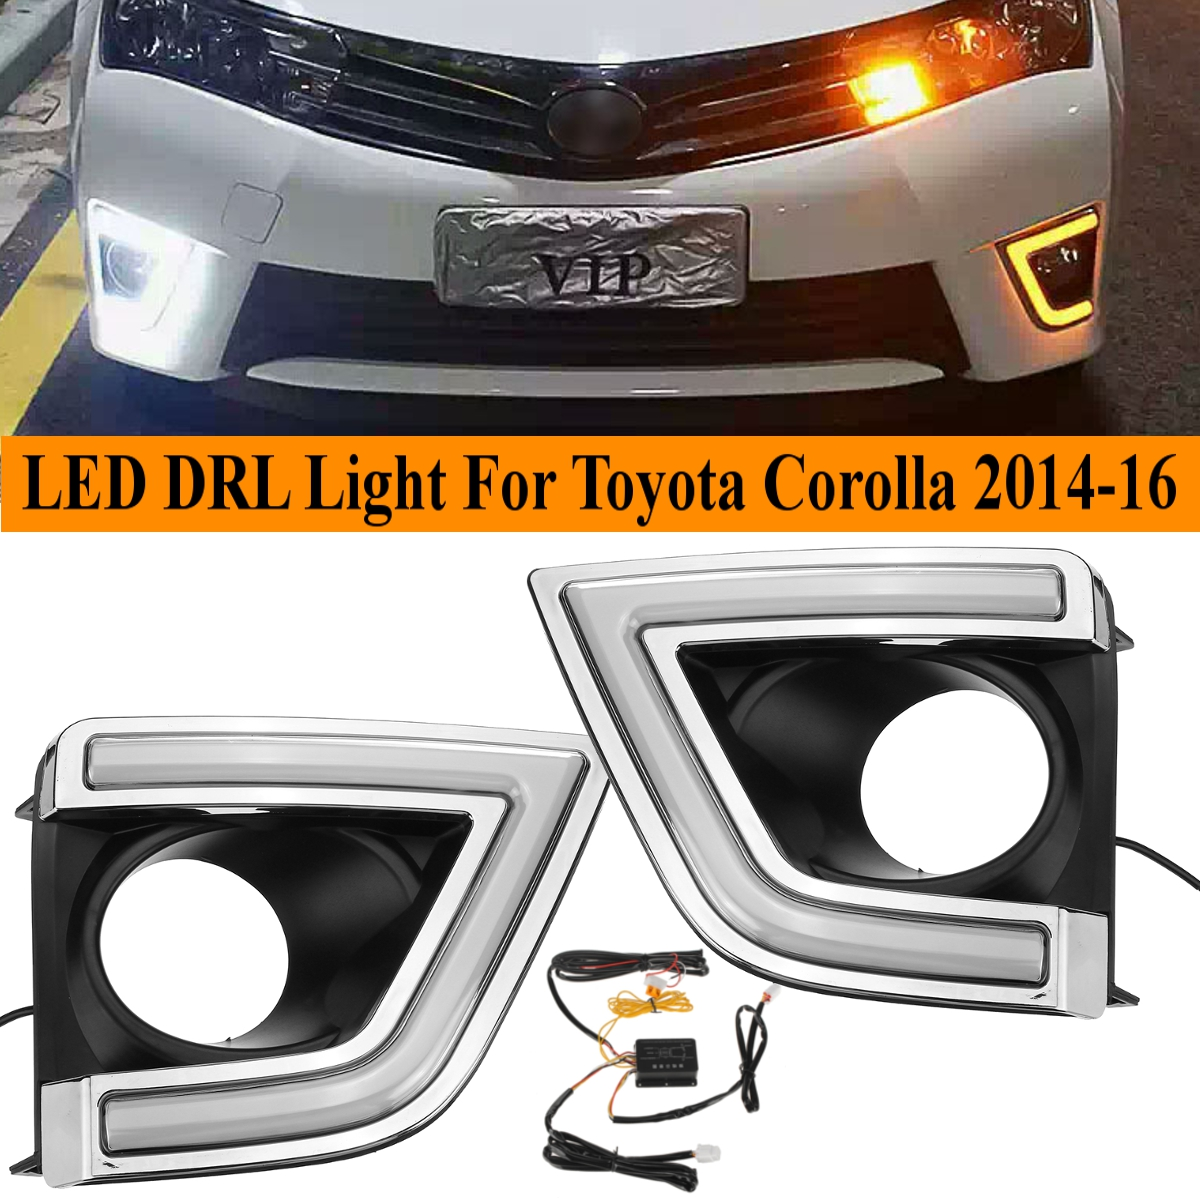 Car Led Drl For Toyota Corolla 2014 2015 2016 White Yellow Daytime Running Light Drl Driving Fog Lamp Blink Accessories  Cover